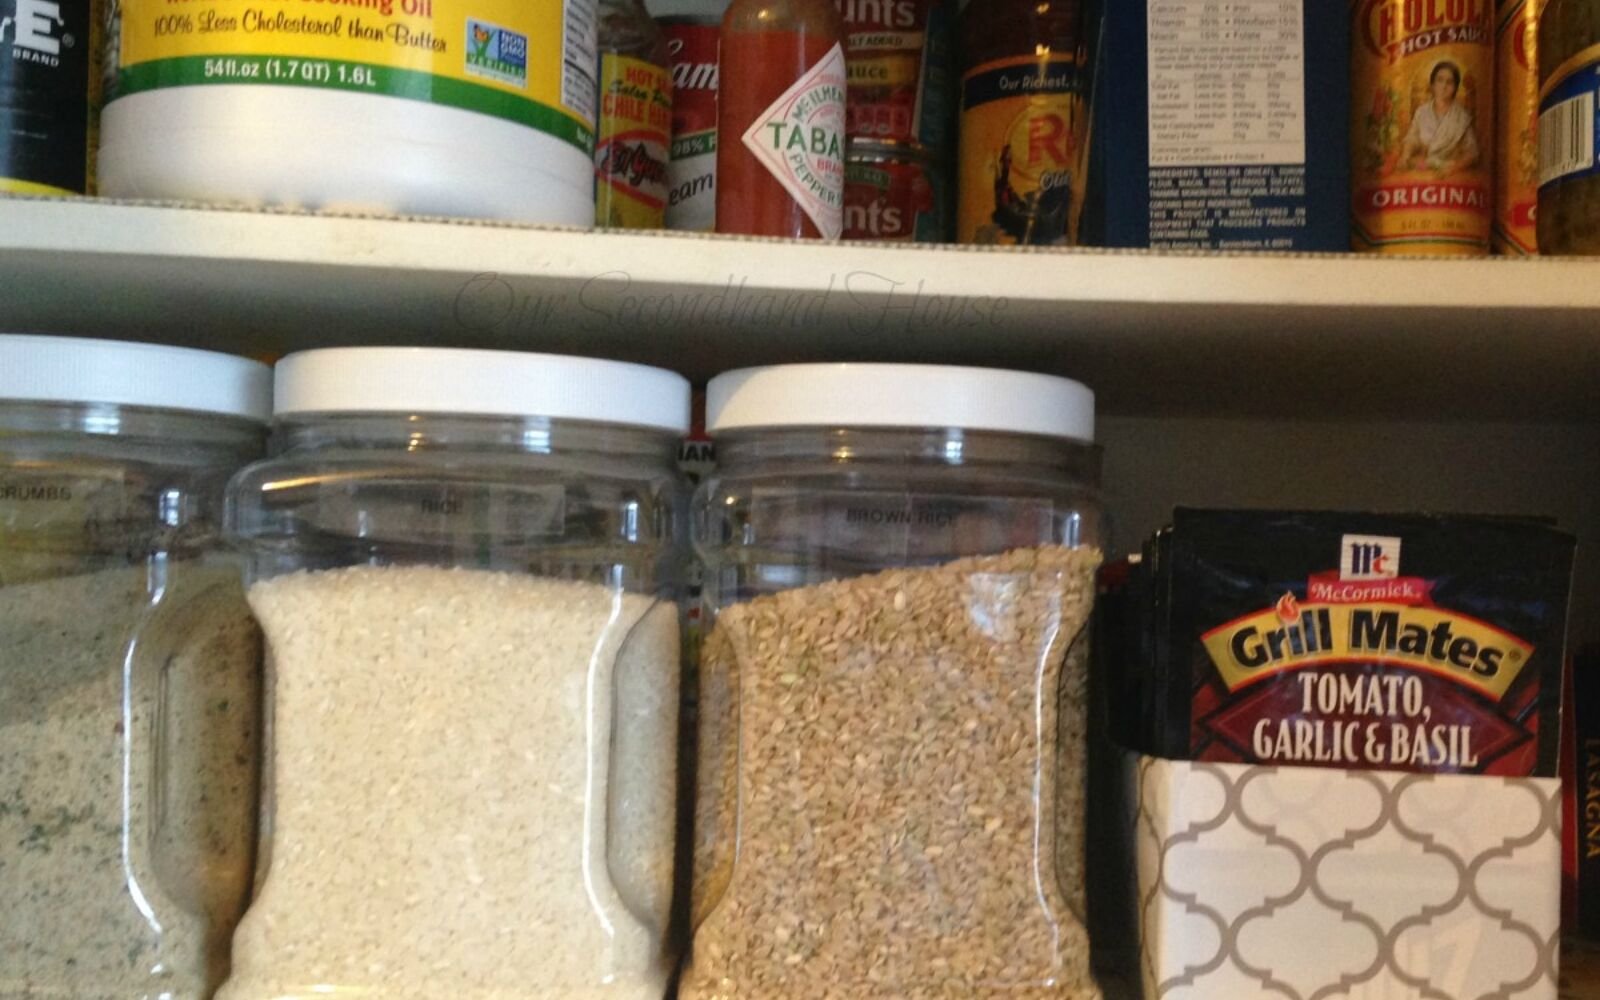 s post, Turn A Ziplock Box Into A Seasoning Container